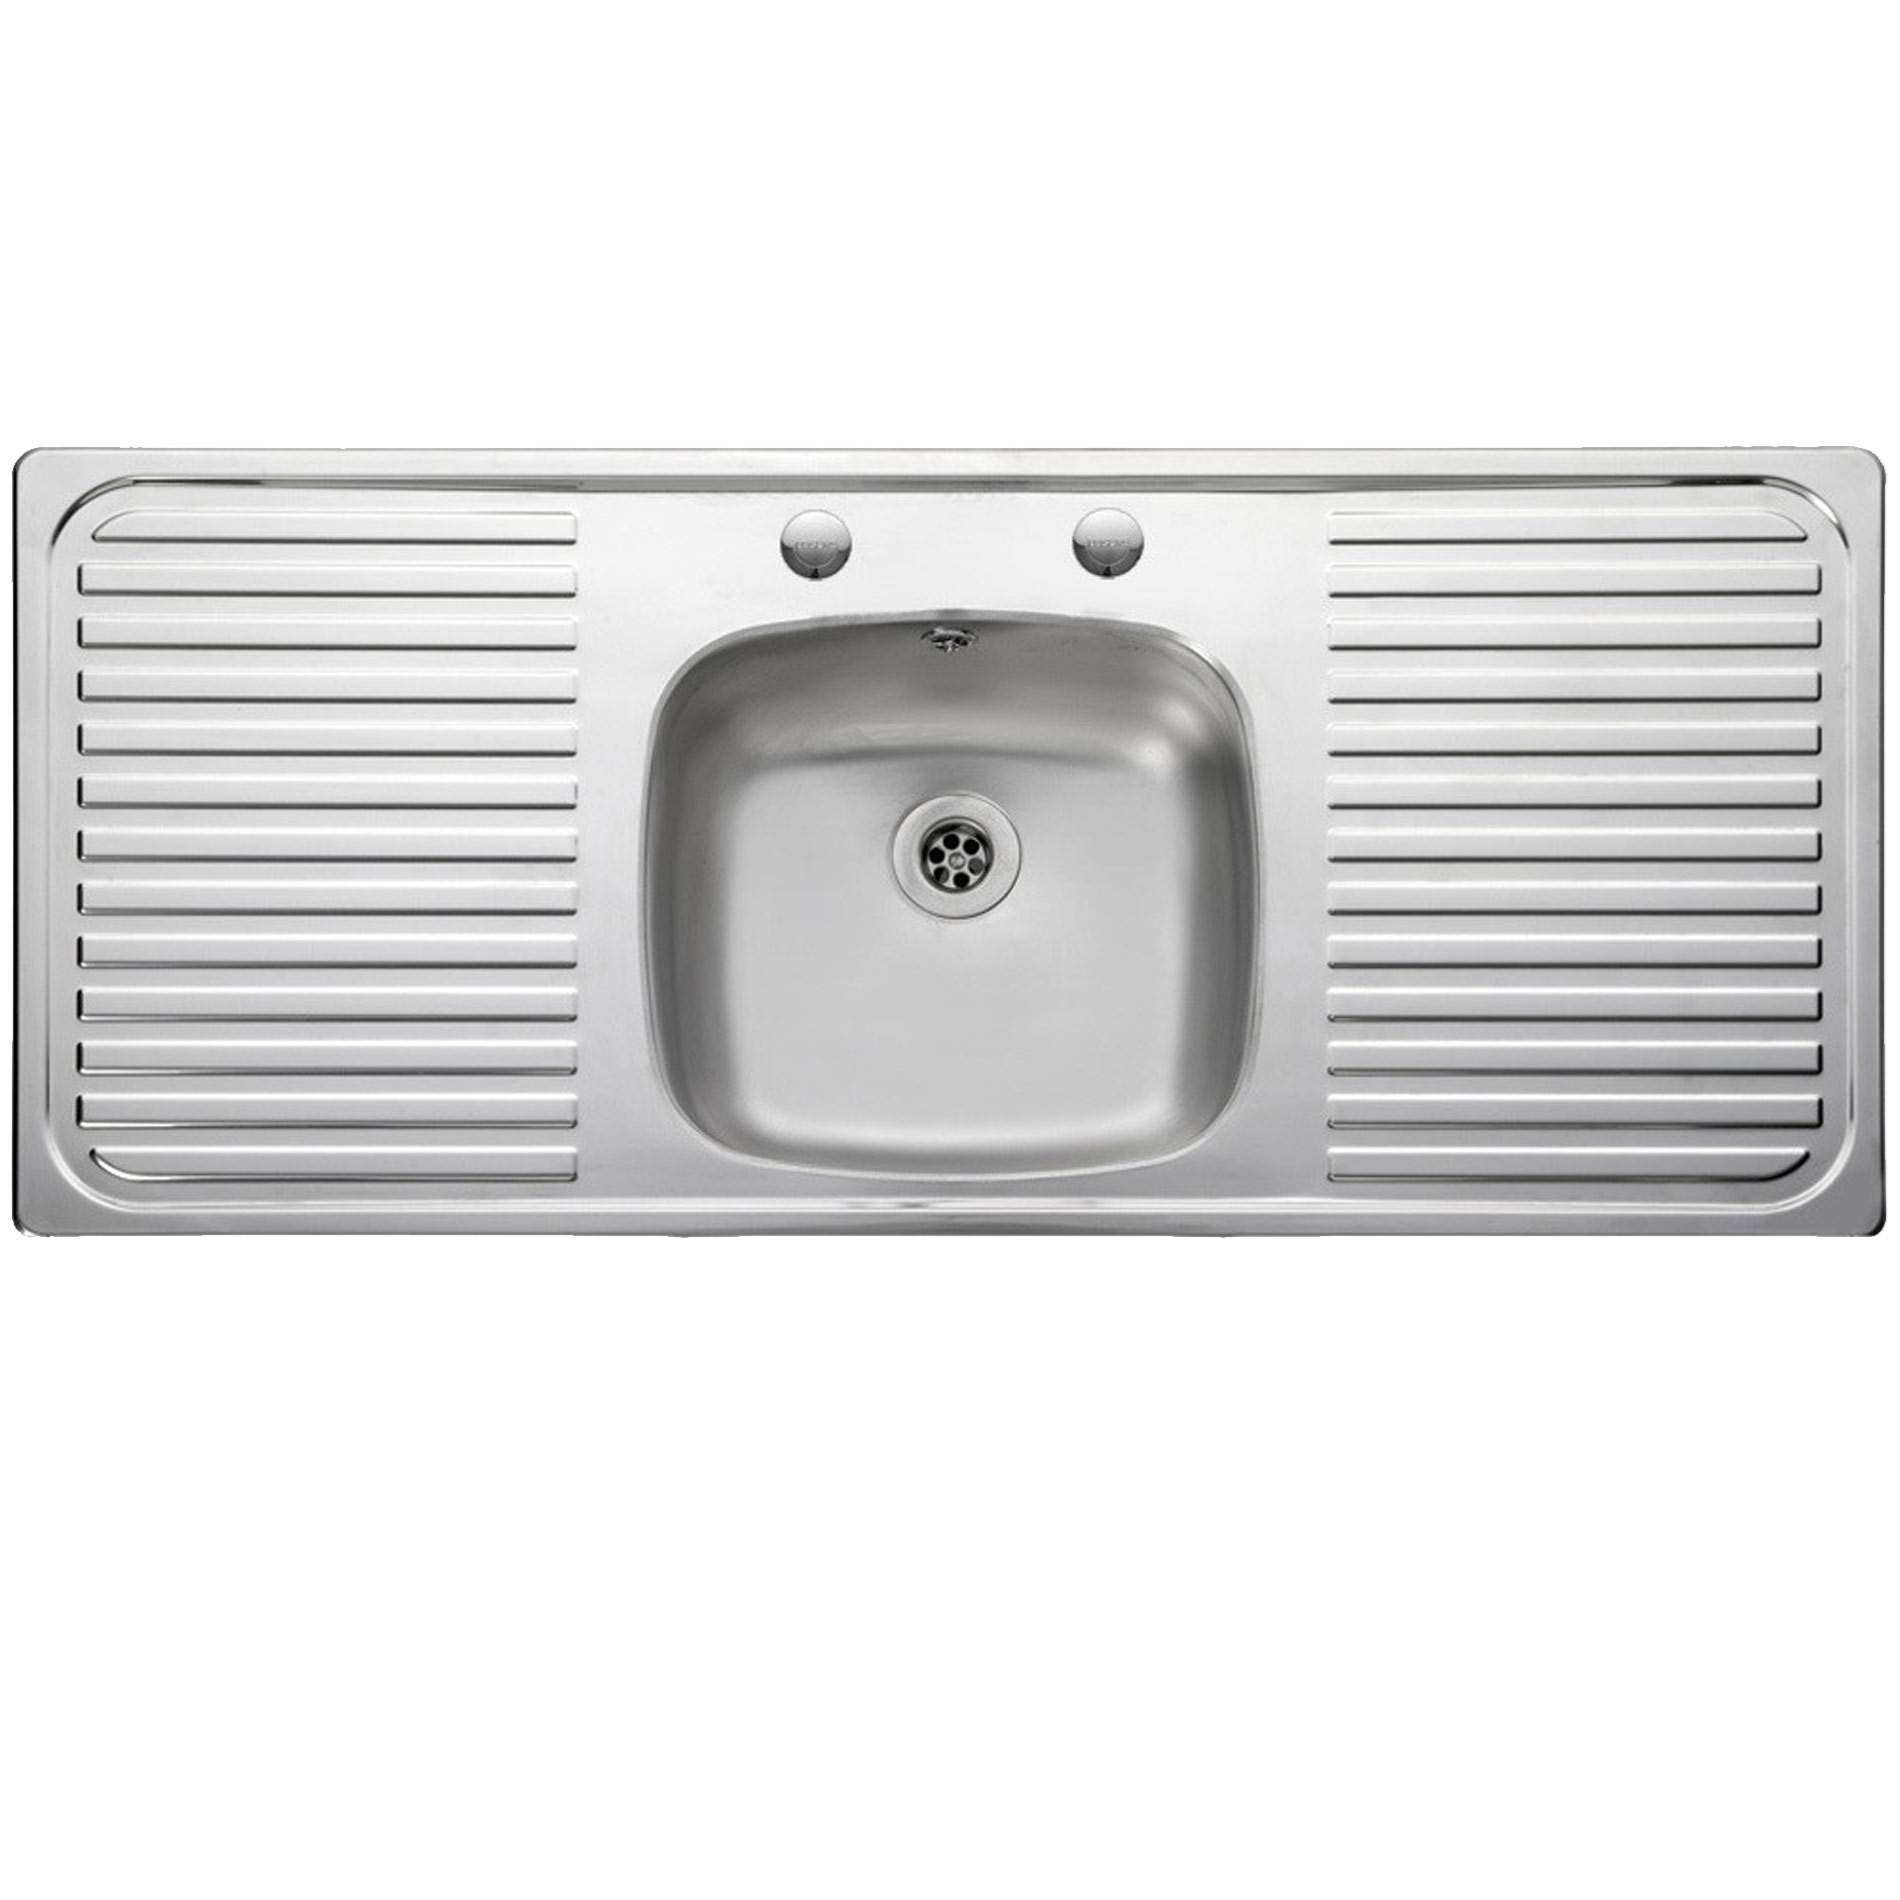 Picture of Linear LR116052/NC Stainless Steel Sink